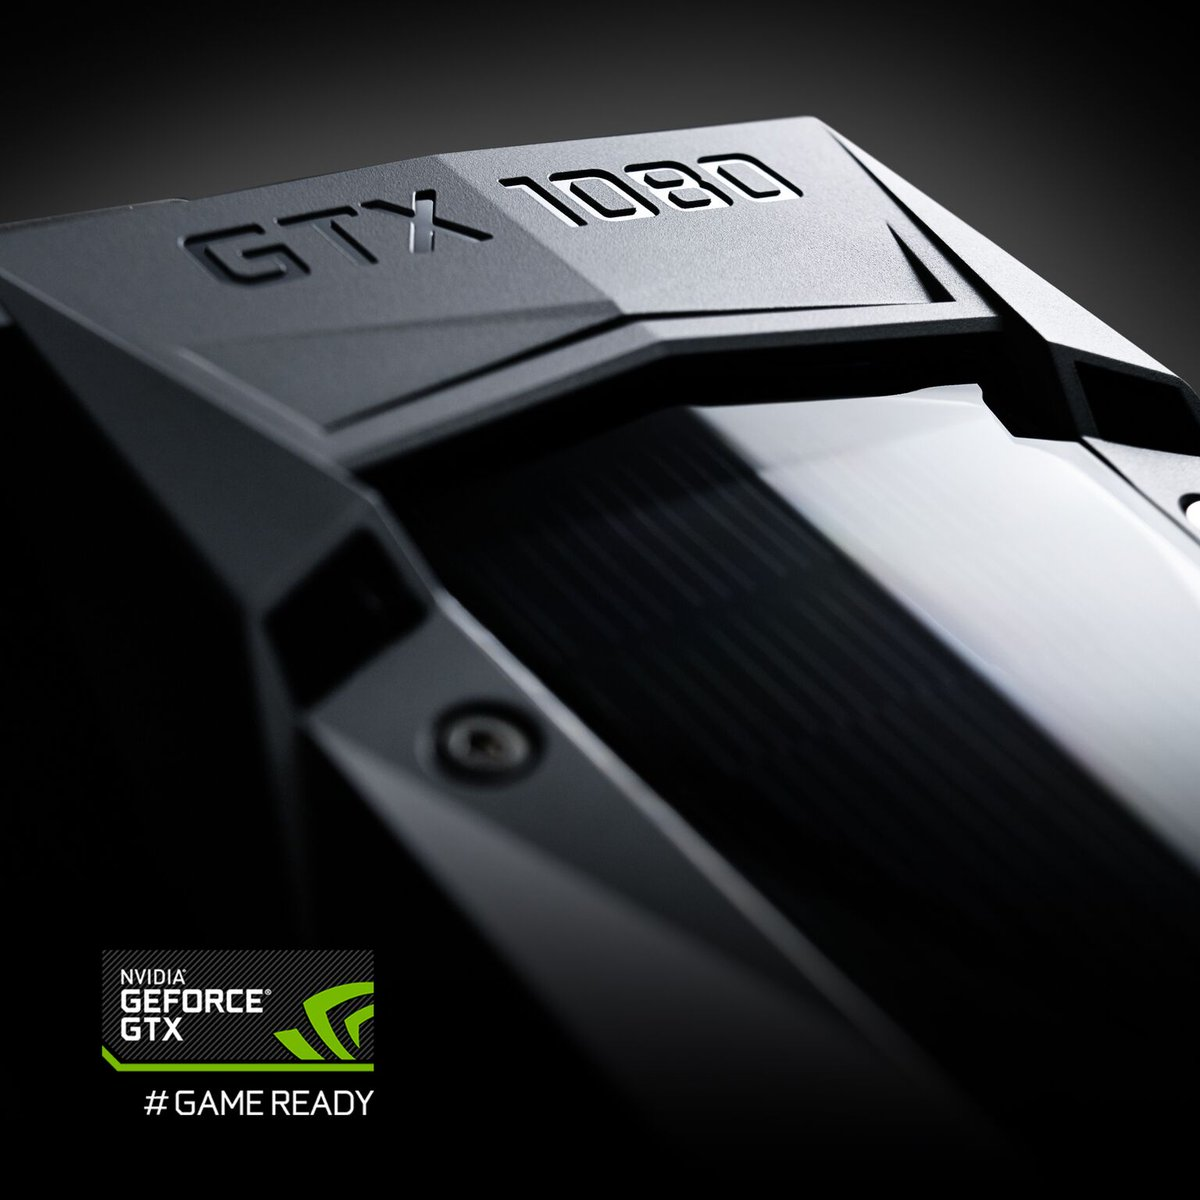 Gaming Perfected. @NVIDIA introduces the GeForce GTX 1080: https://t.co/Fbap7Xl0H1 Are you #GameReady? https://t.co/Ha7Sus36Pe